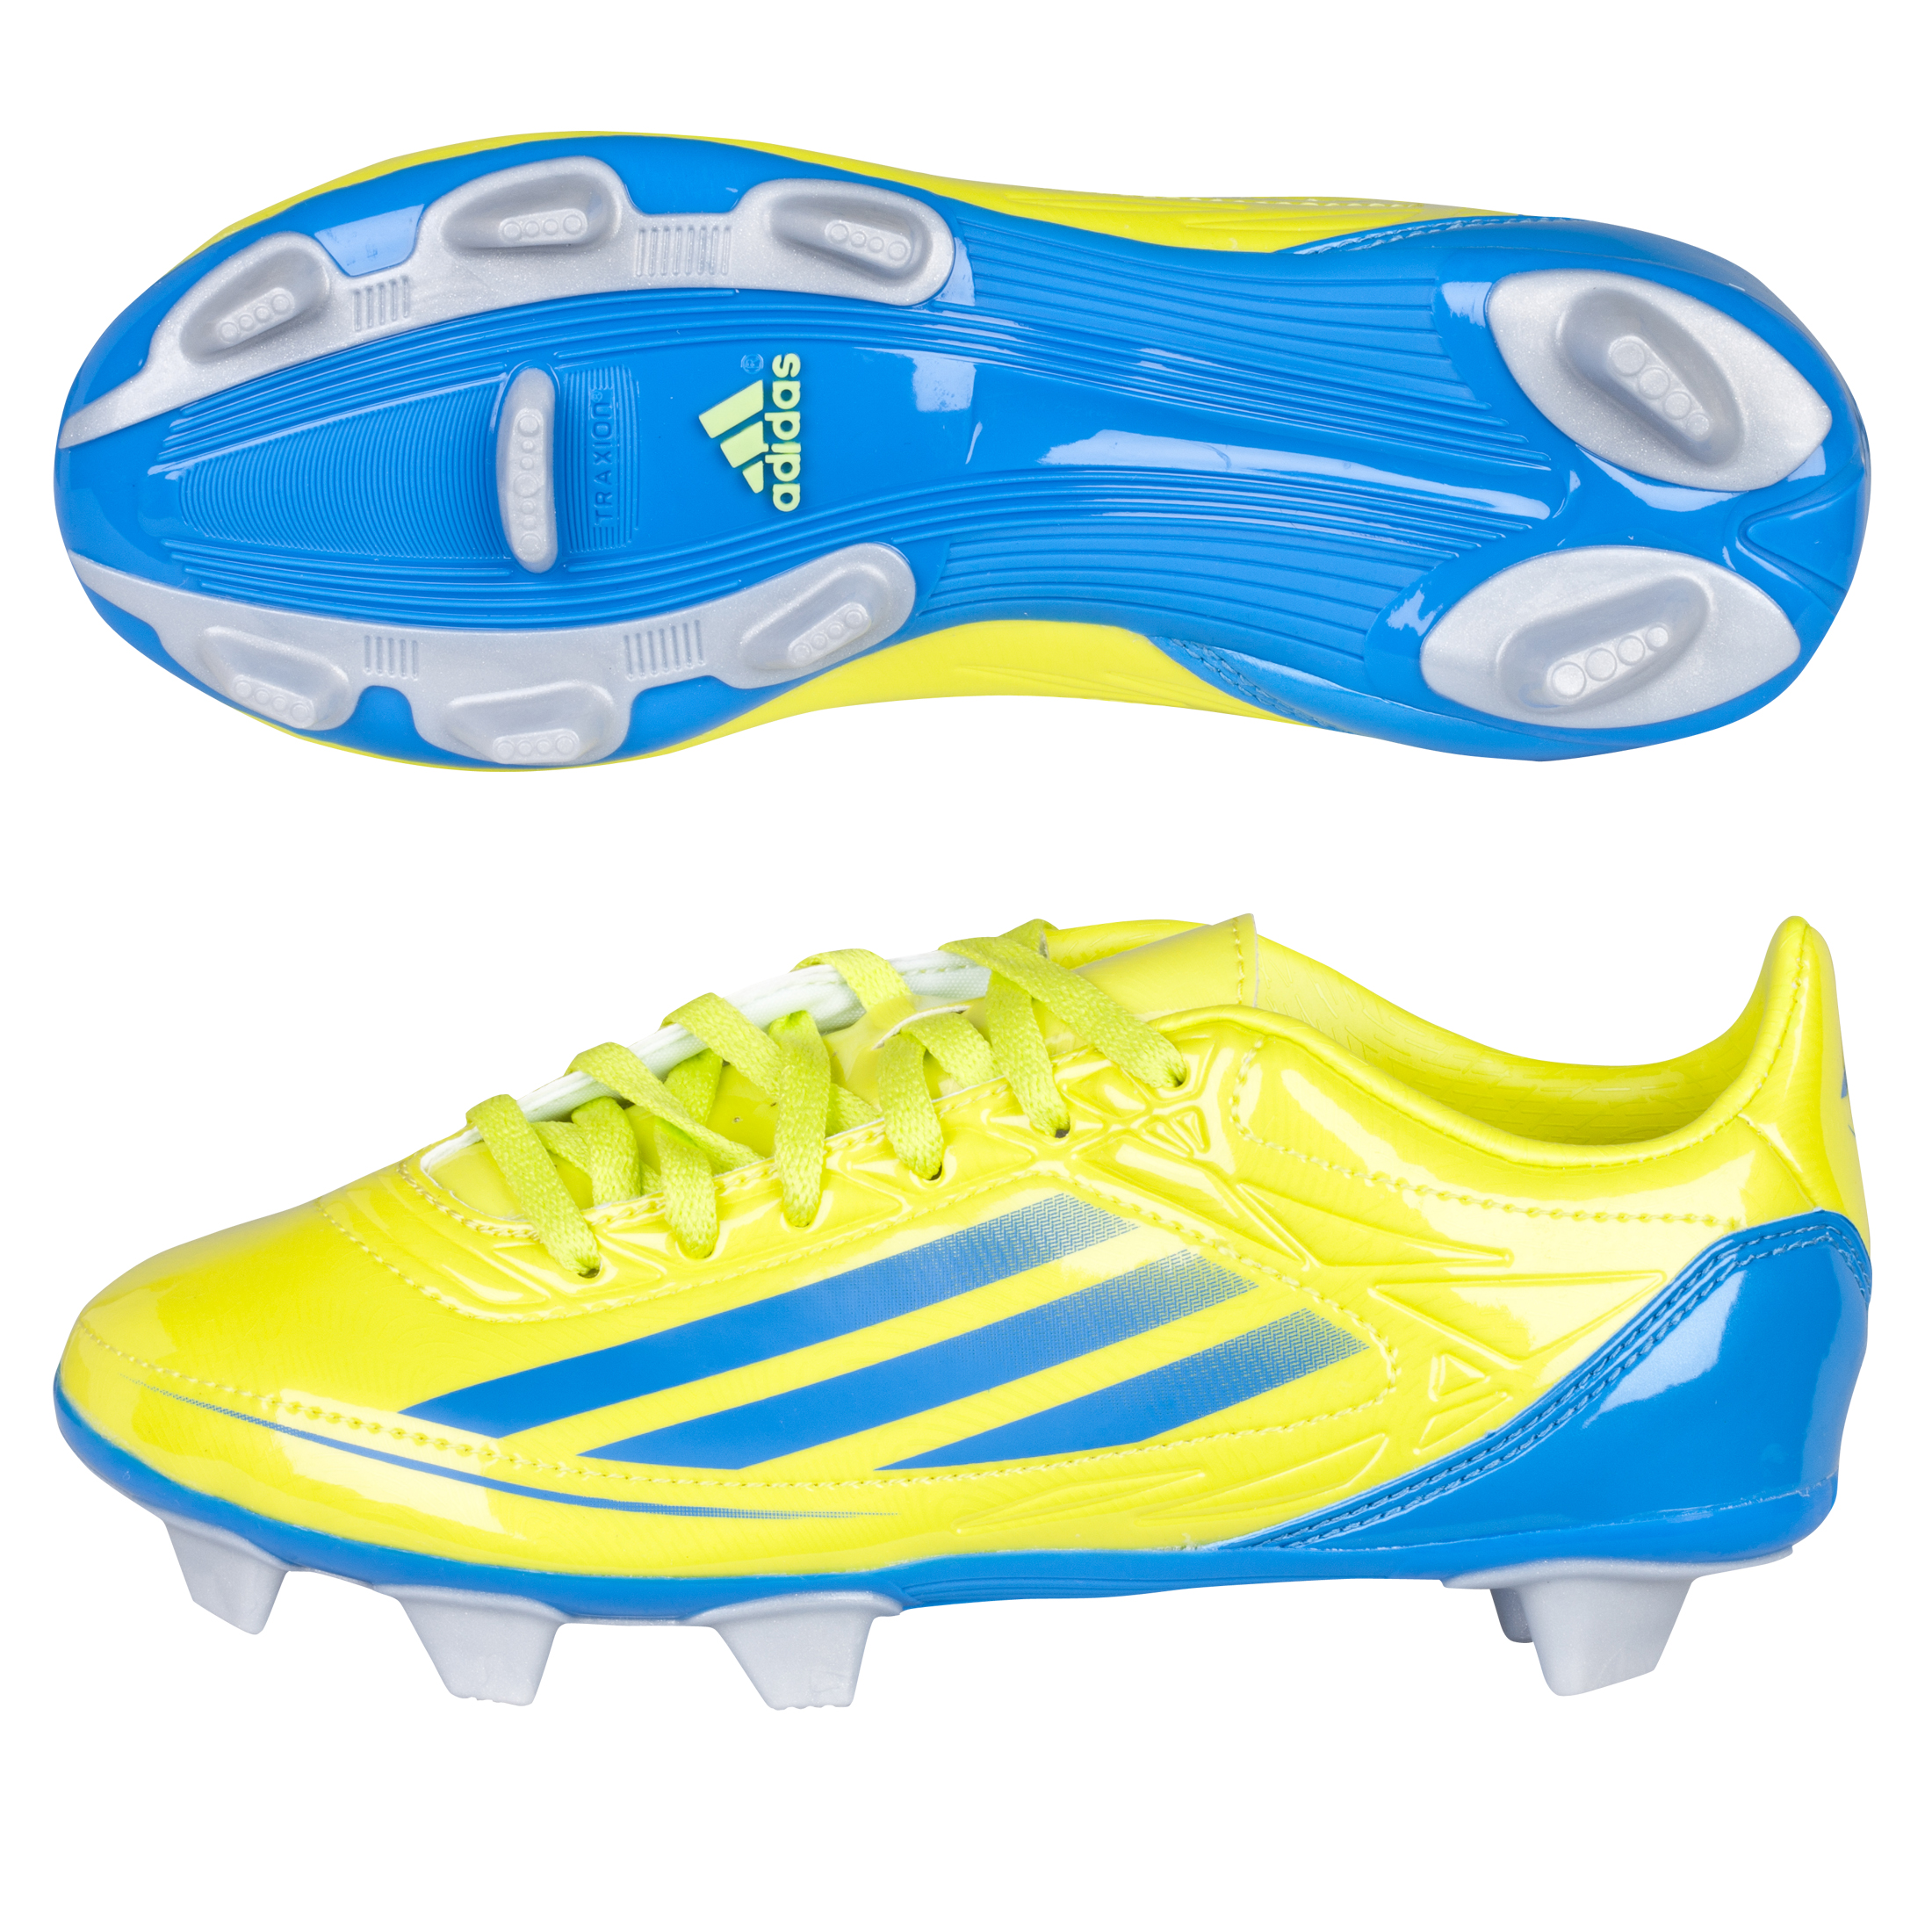 Adidas RS7 II TRX Soft Ground Rugby Boots - Lab Lime/Bright Blue - Kids